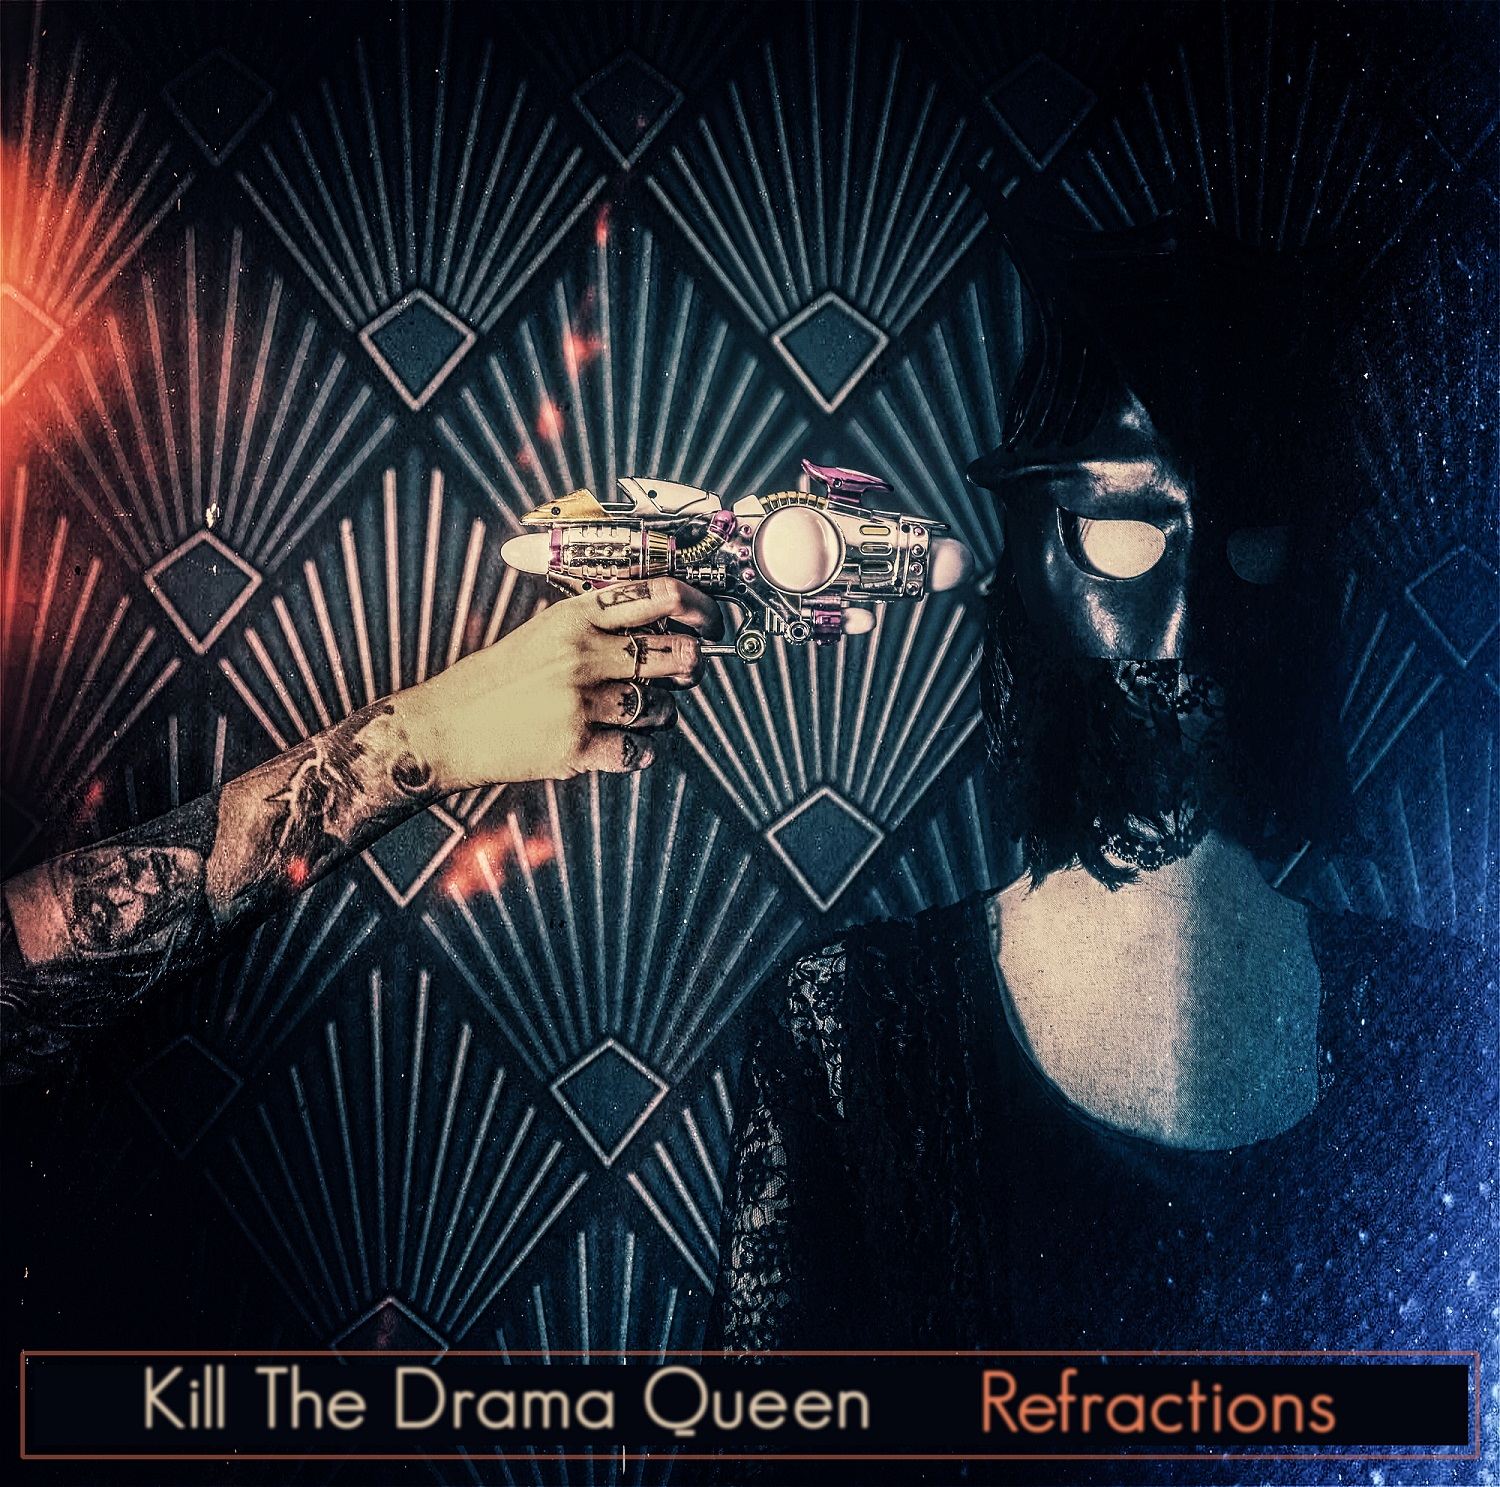 Kill The Drama Queen